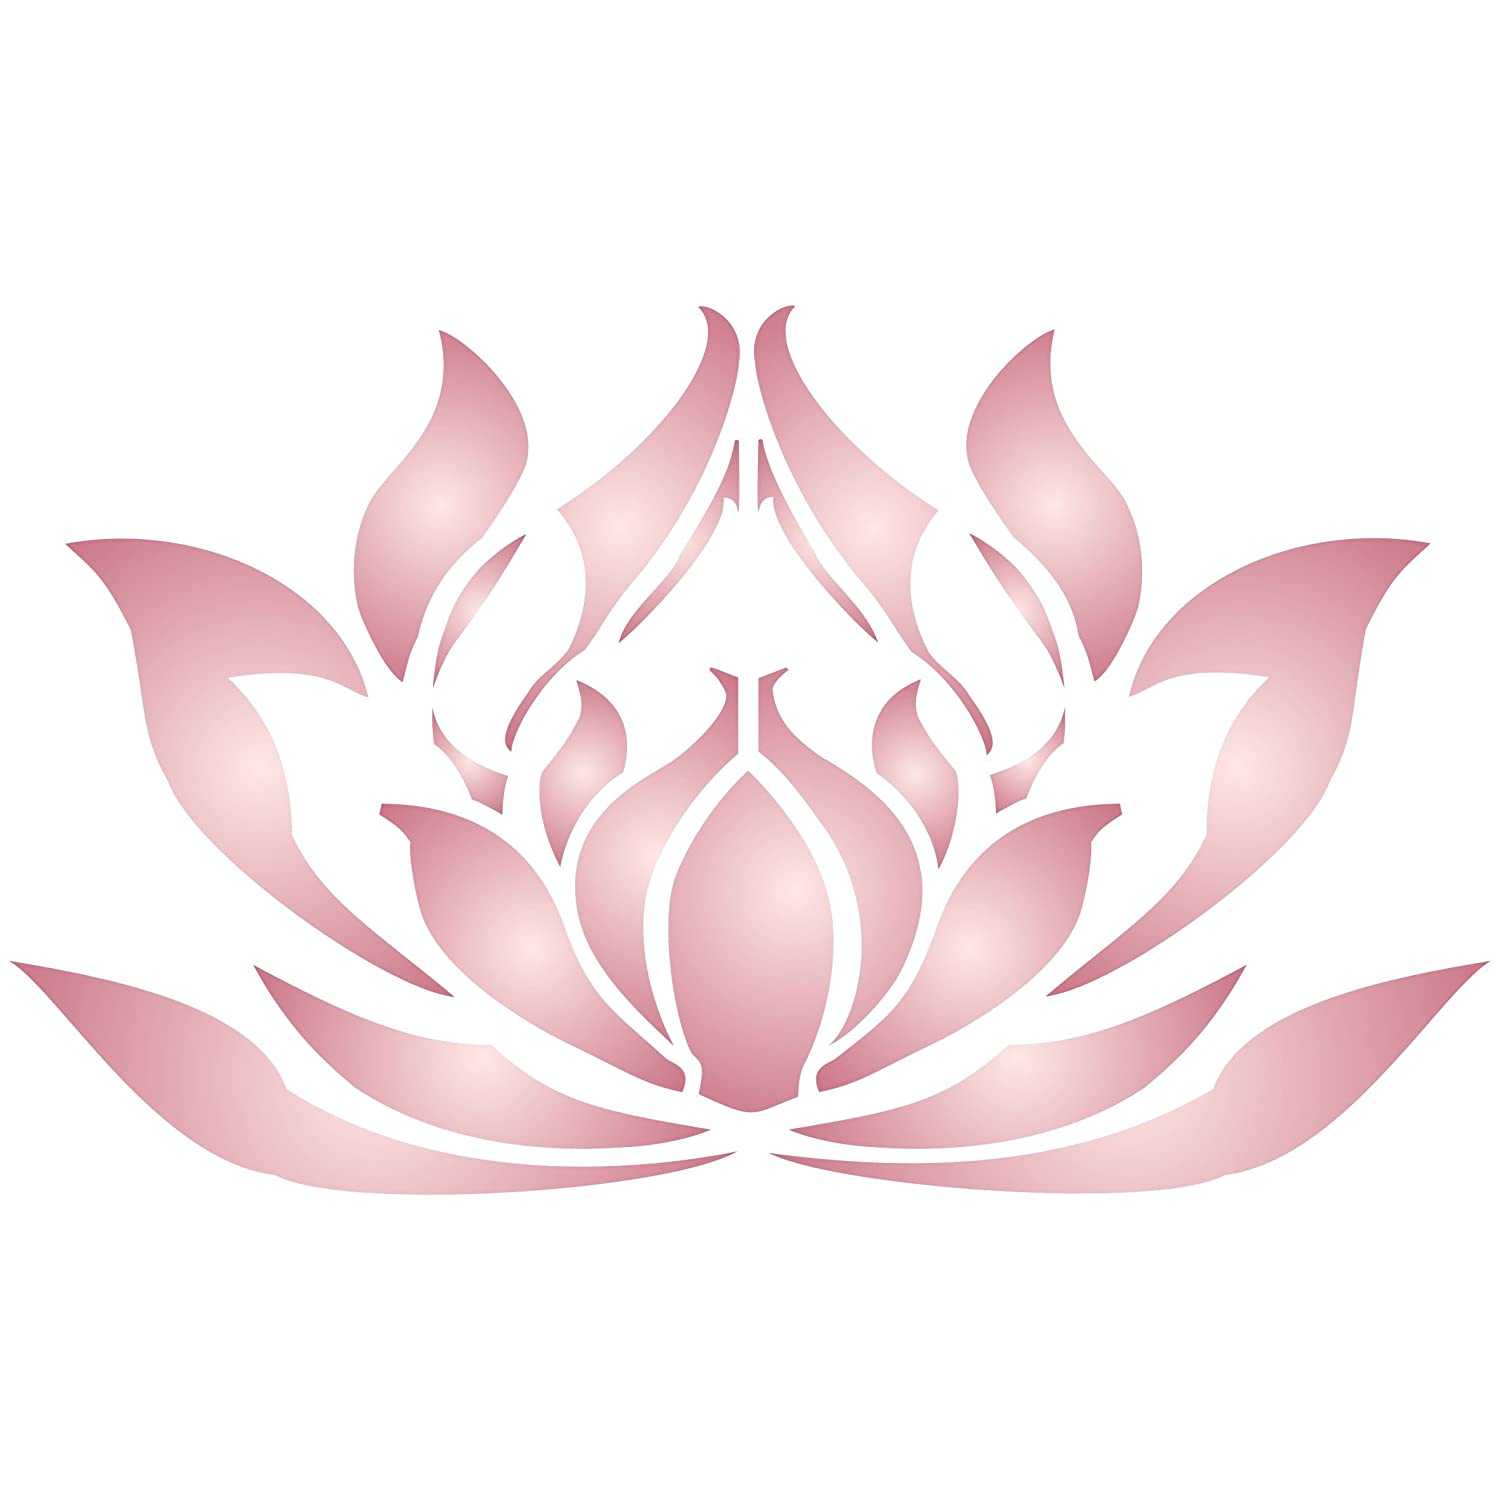 Amazon lotus flower stencil size 75w x 45h reusable amazon lotus flower stencil size 75w x 45h reusable wall stencils for painting best quality lotus blossom ideas use on walls floors izmirmasajfo Choice Image